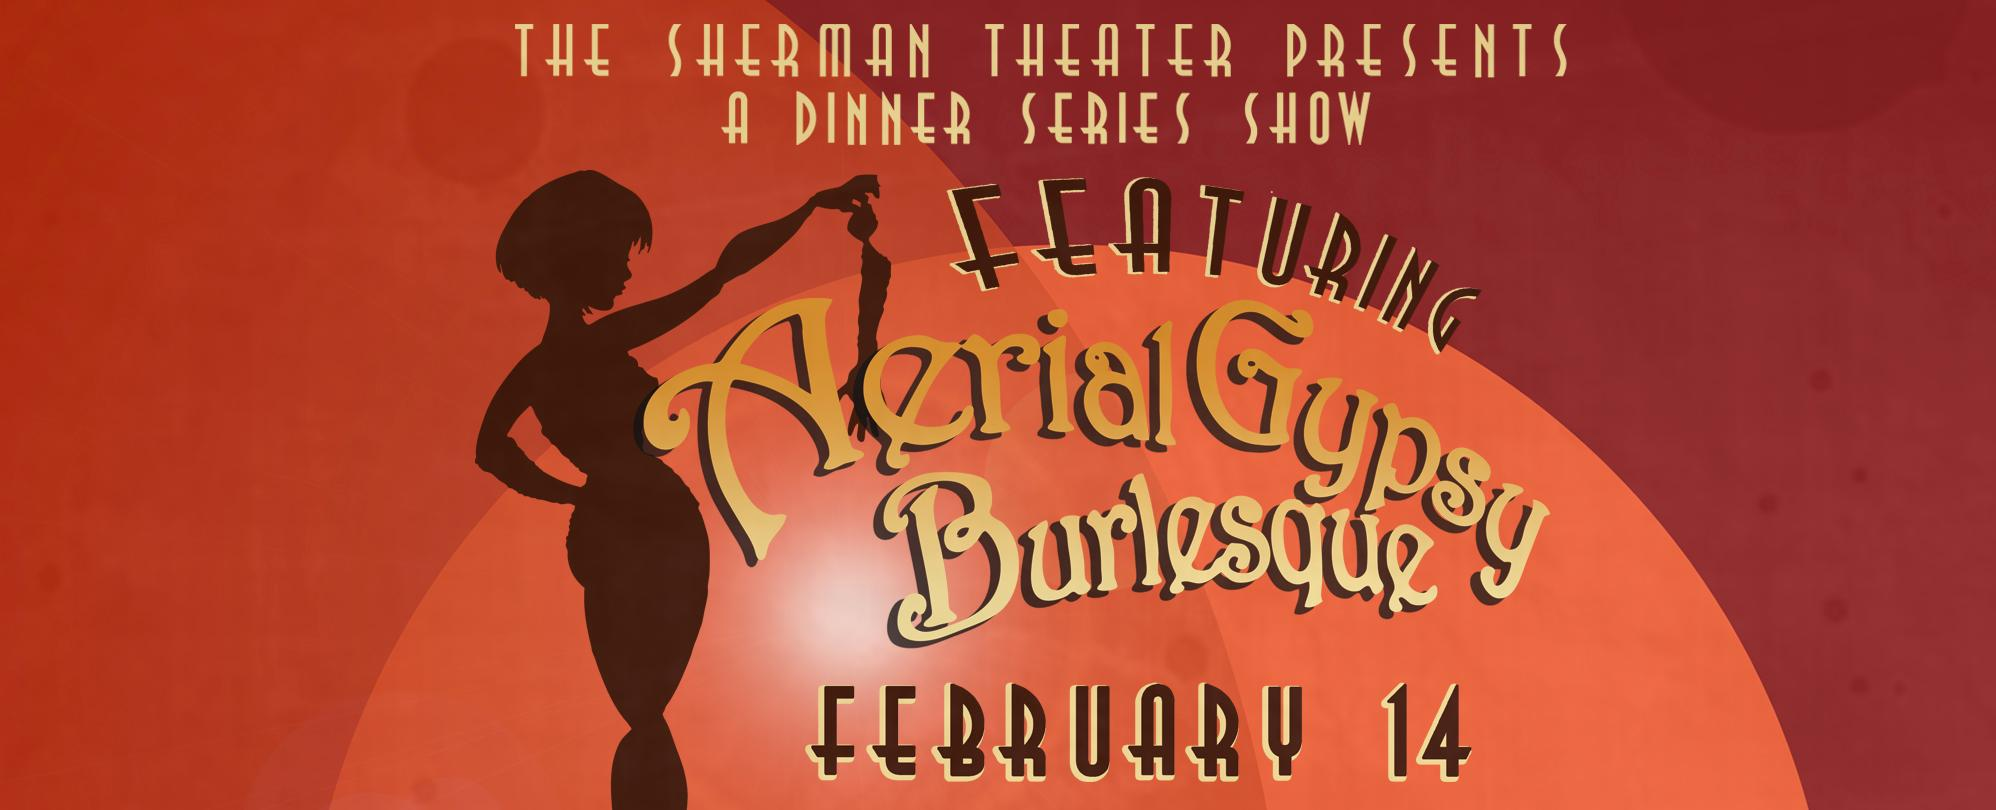 Dinner Series Show featuring Aerial Gypsy Burlesque